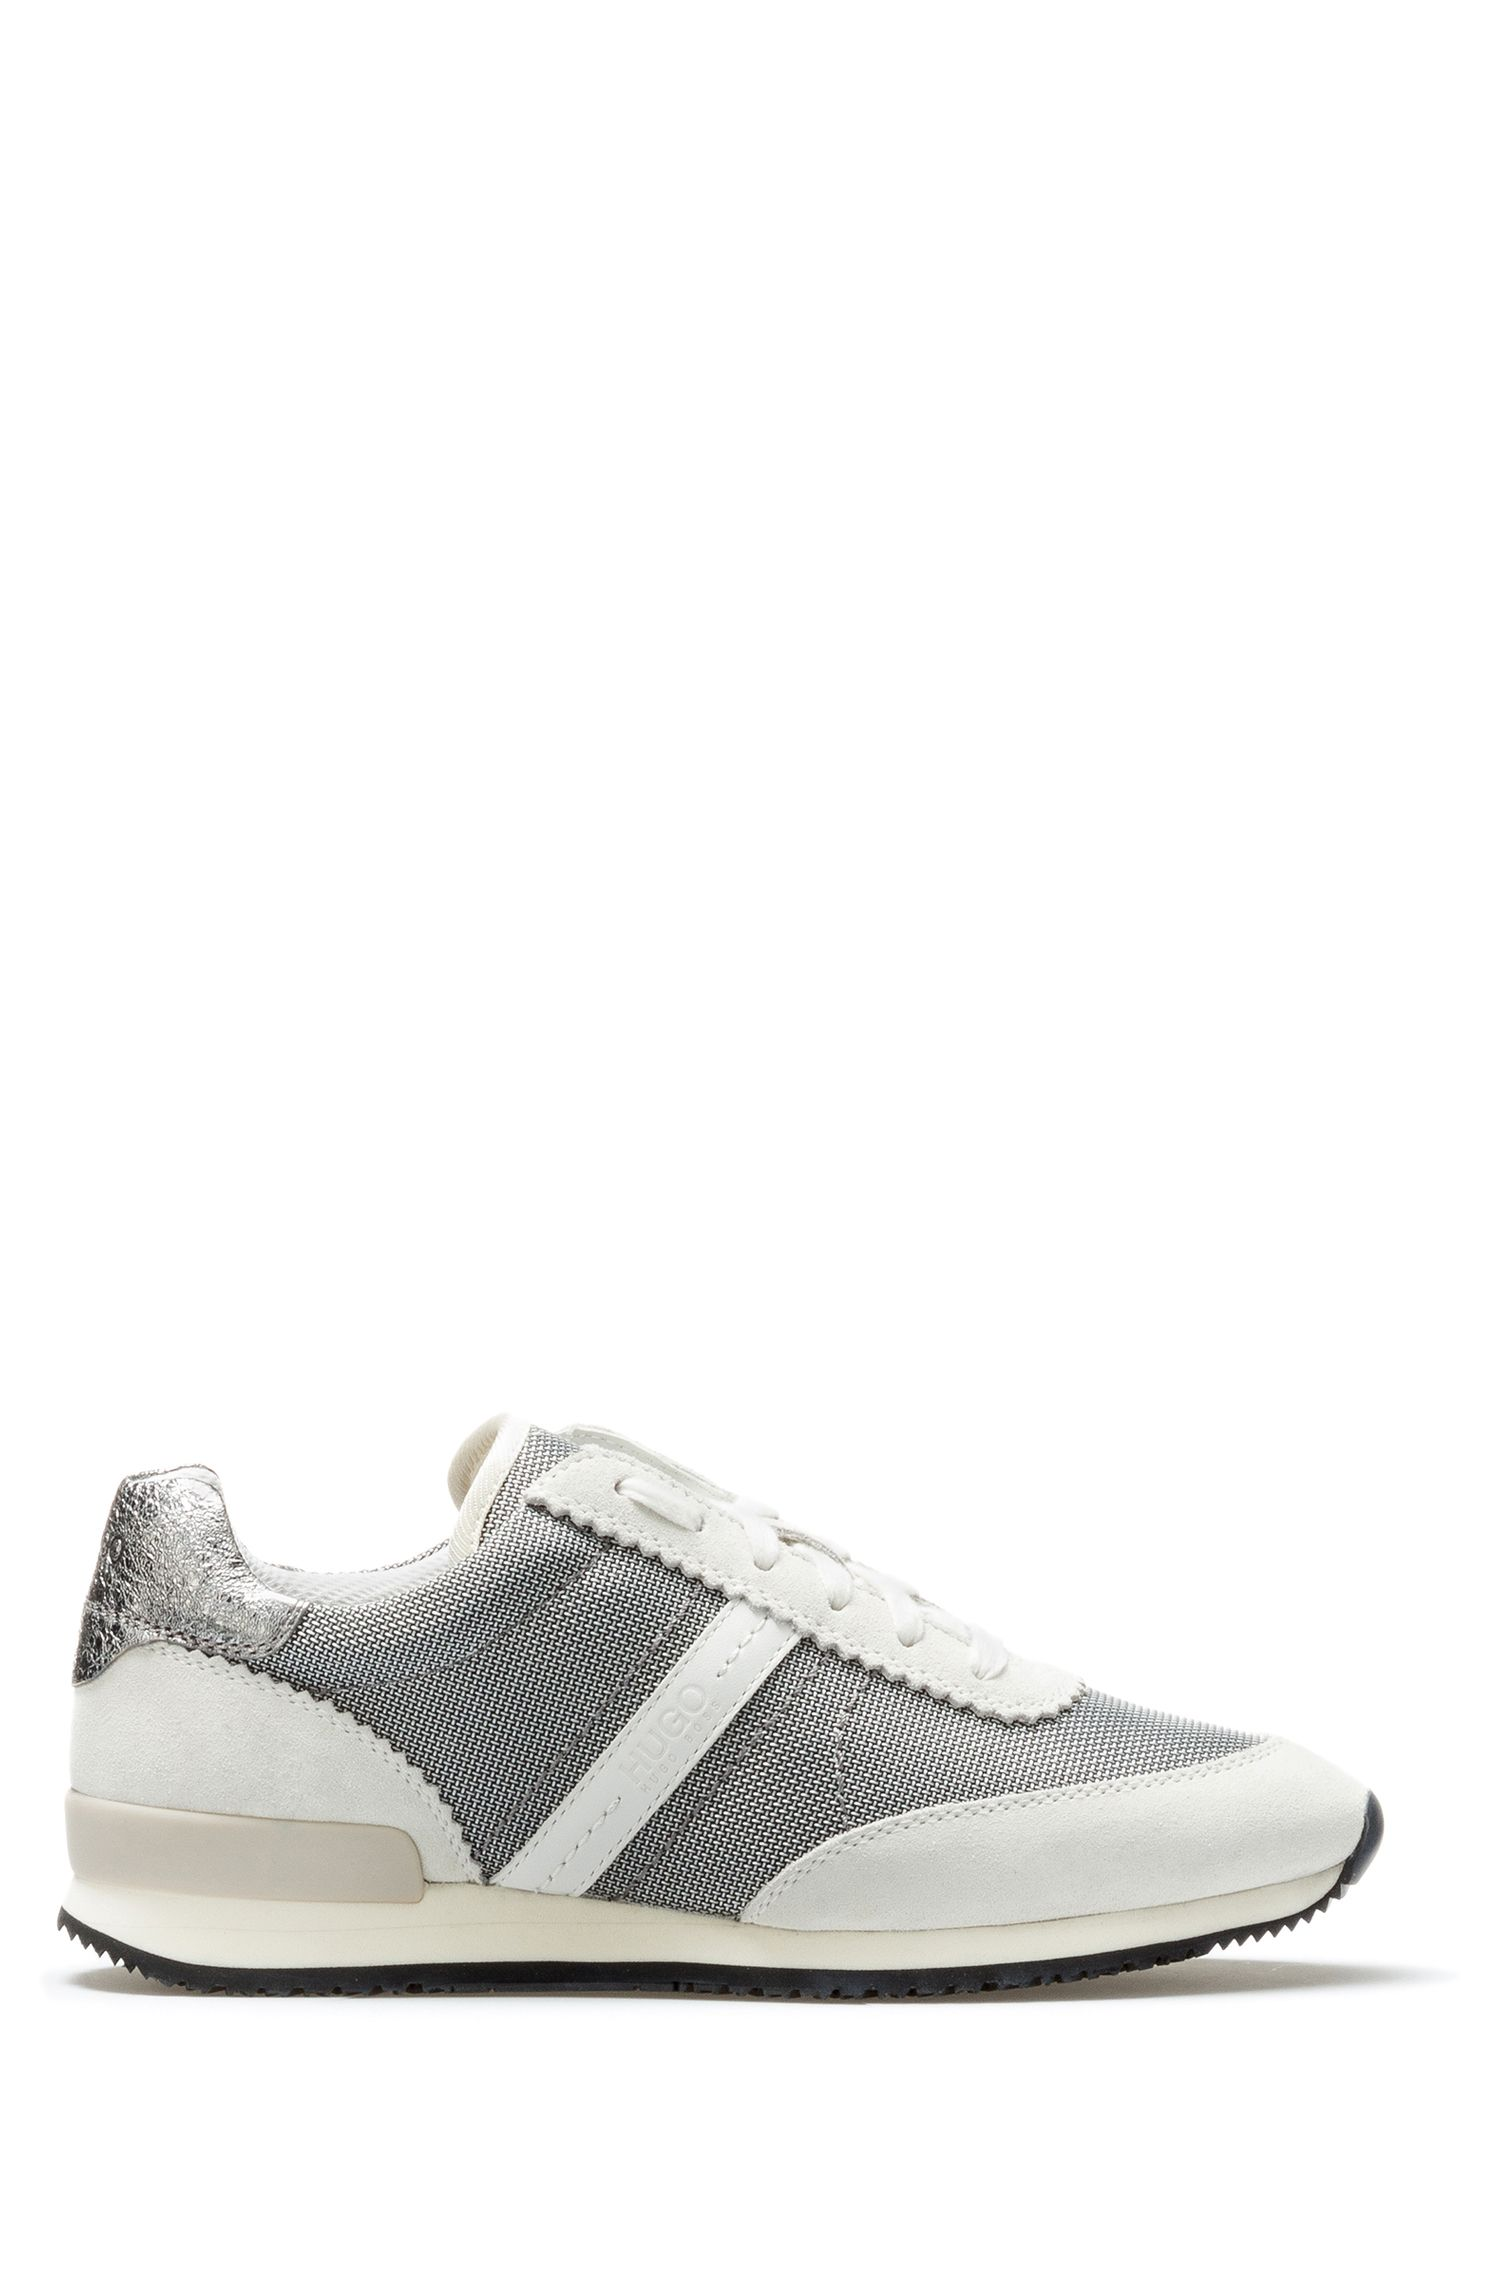 Low-top trainers in soft suede